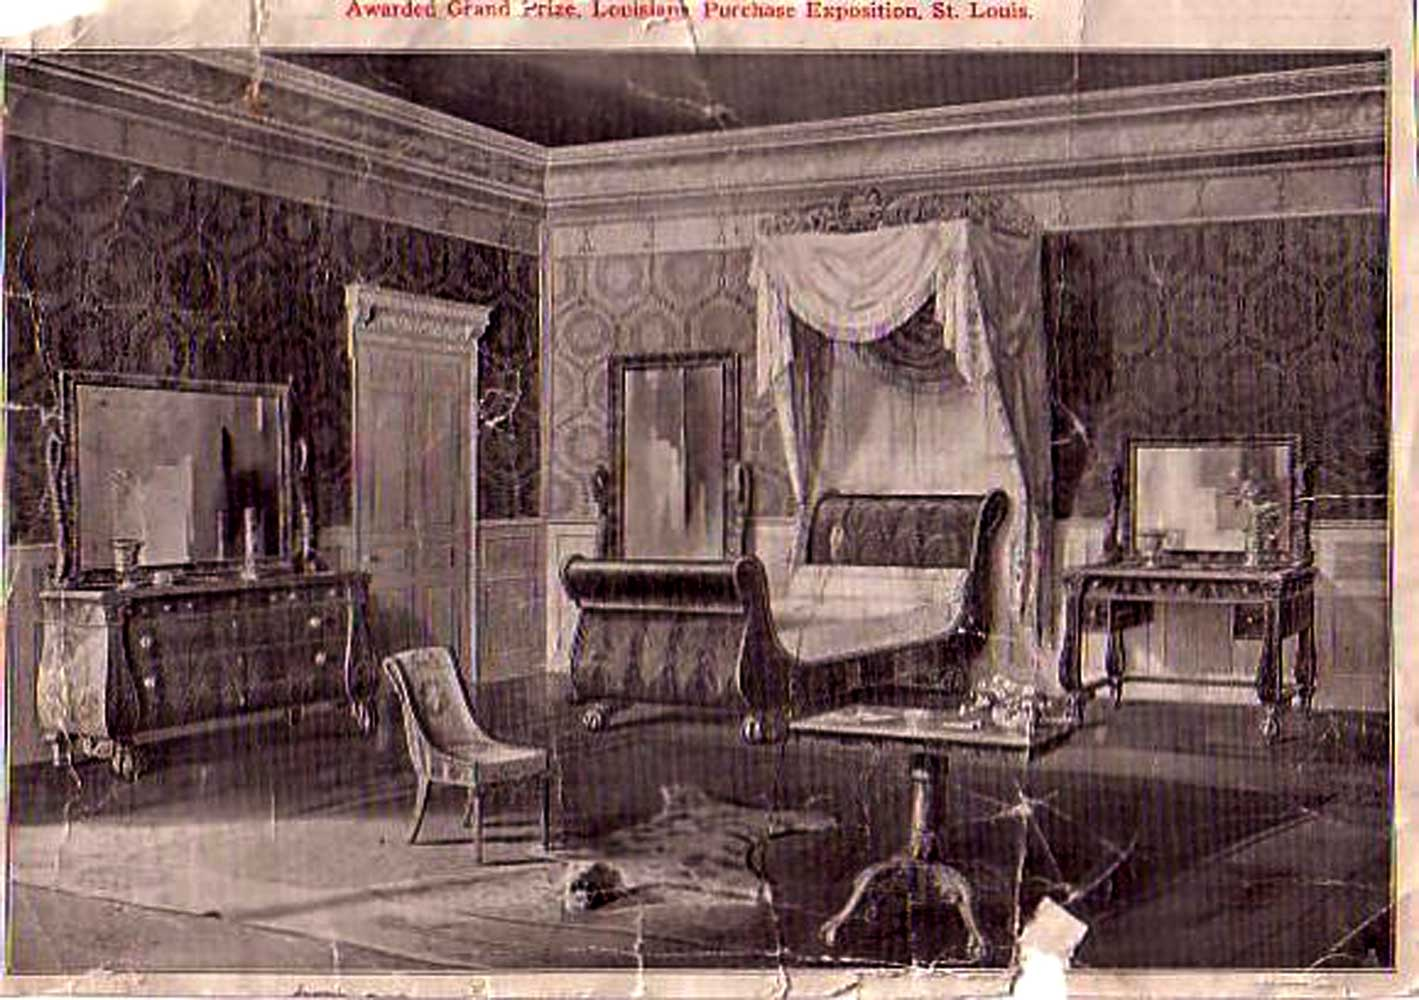 1905 Catalog Image From Nelson Matter Furniture Company Of Grand Rapids, ...